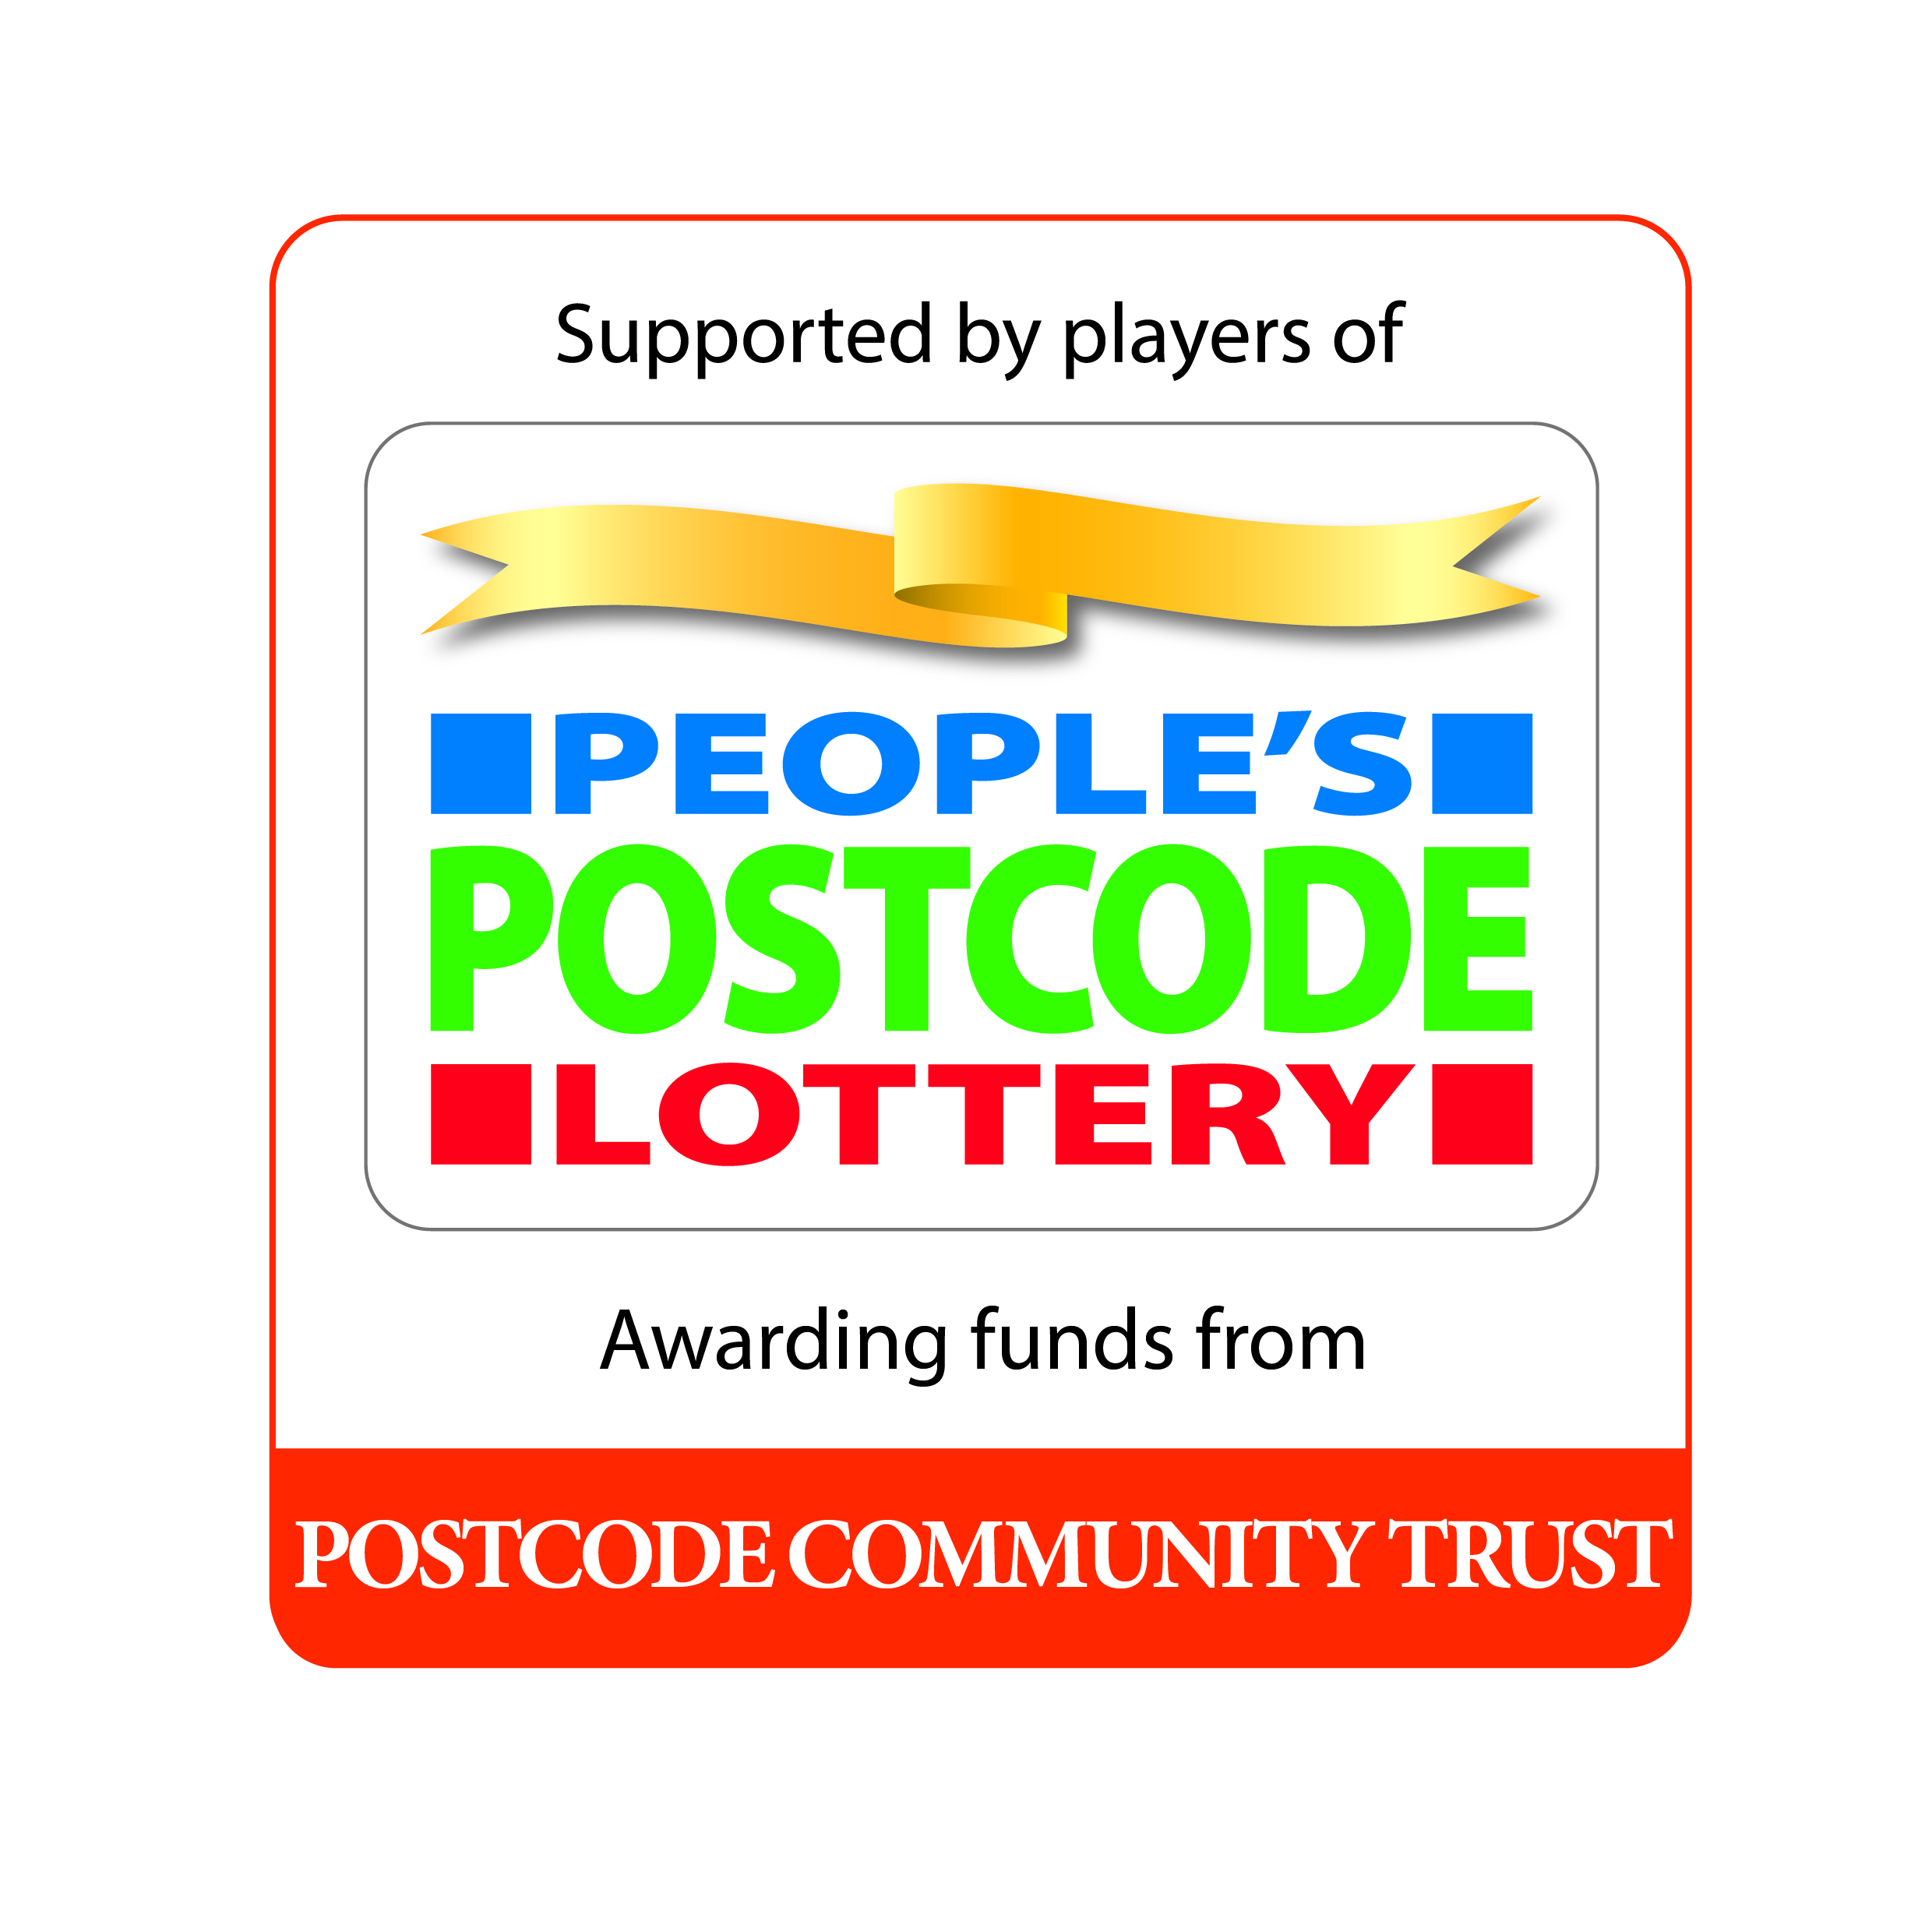 Supported by the People's Postcode Lottery